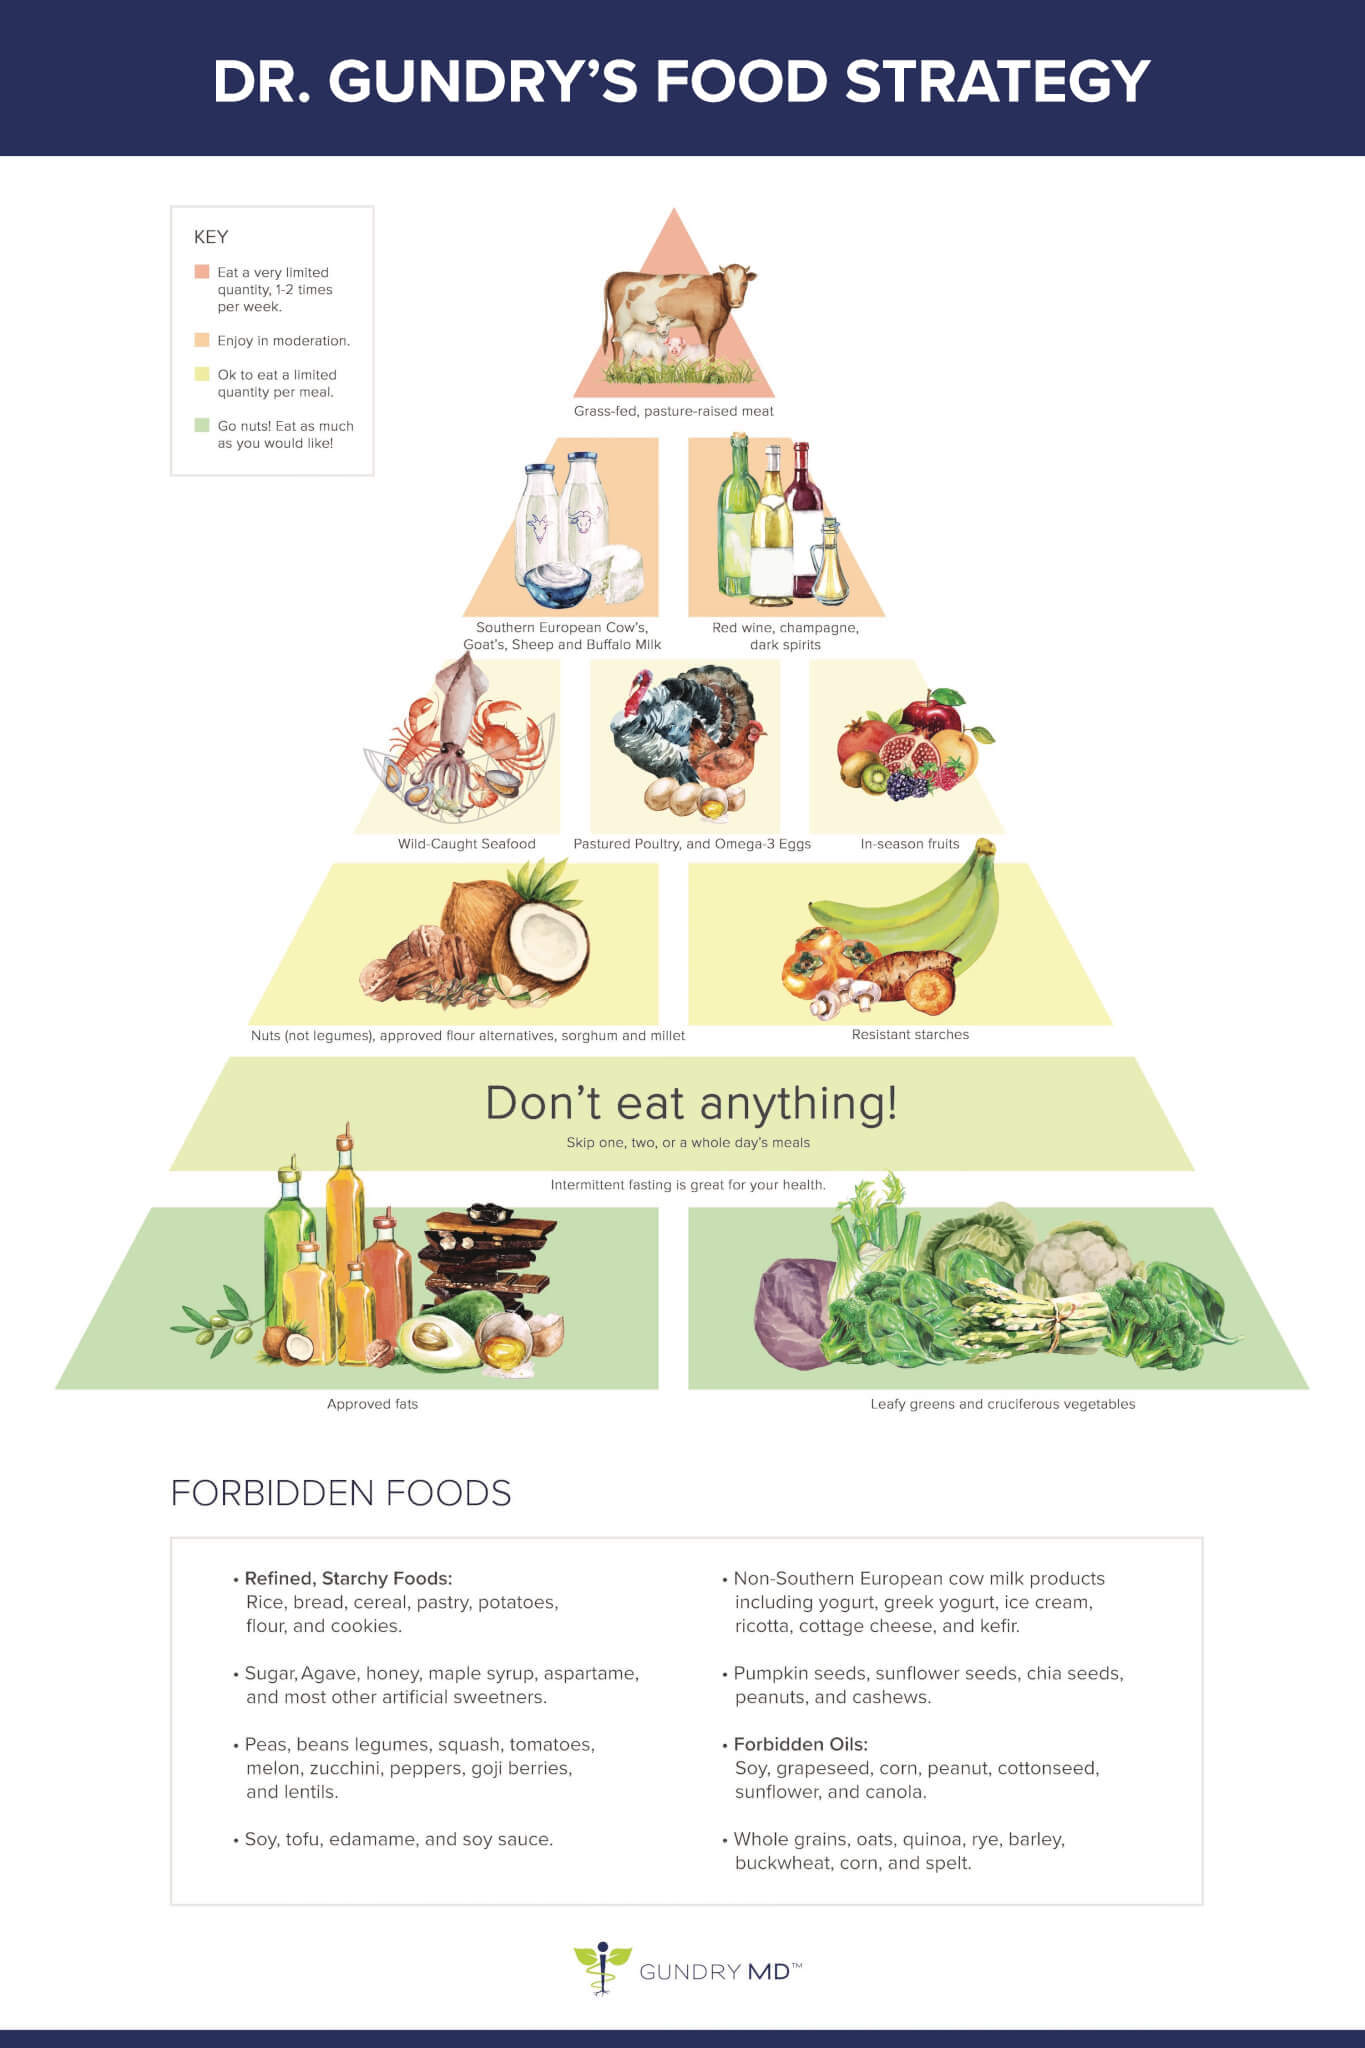 dr gundry's food strategy infographic